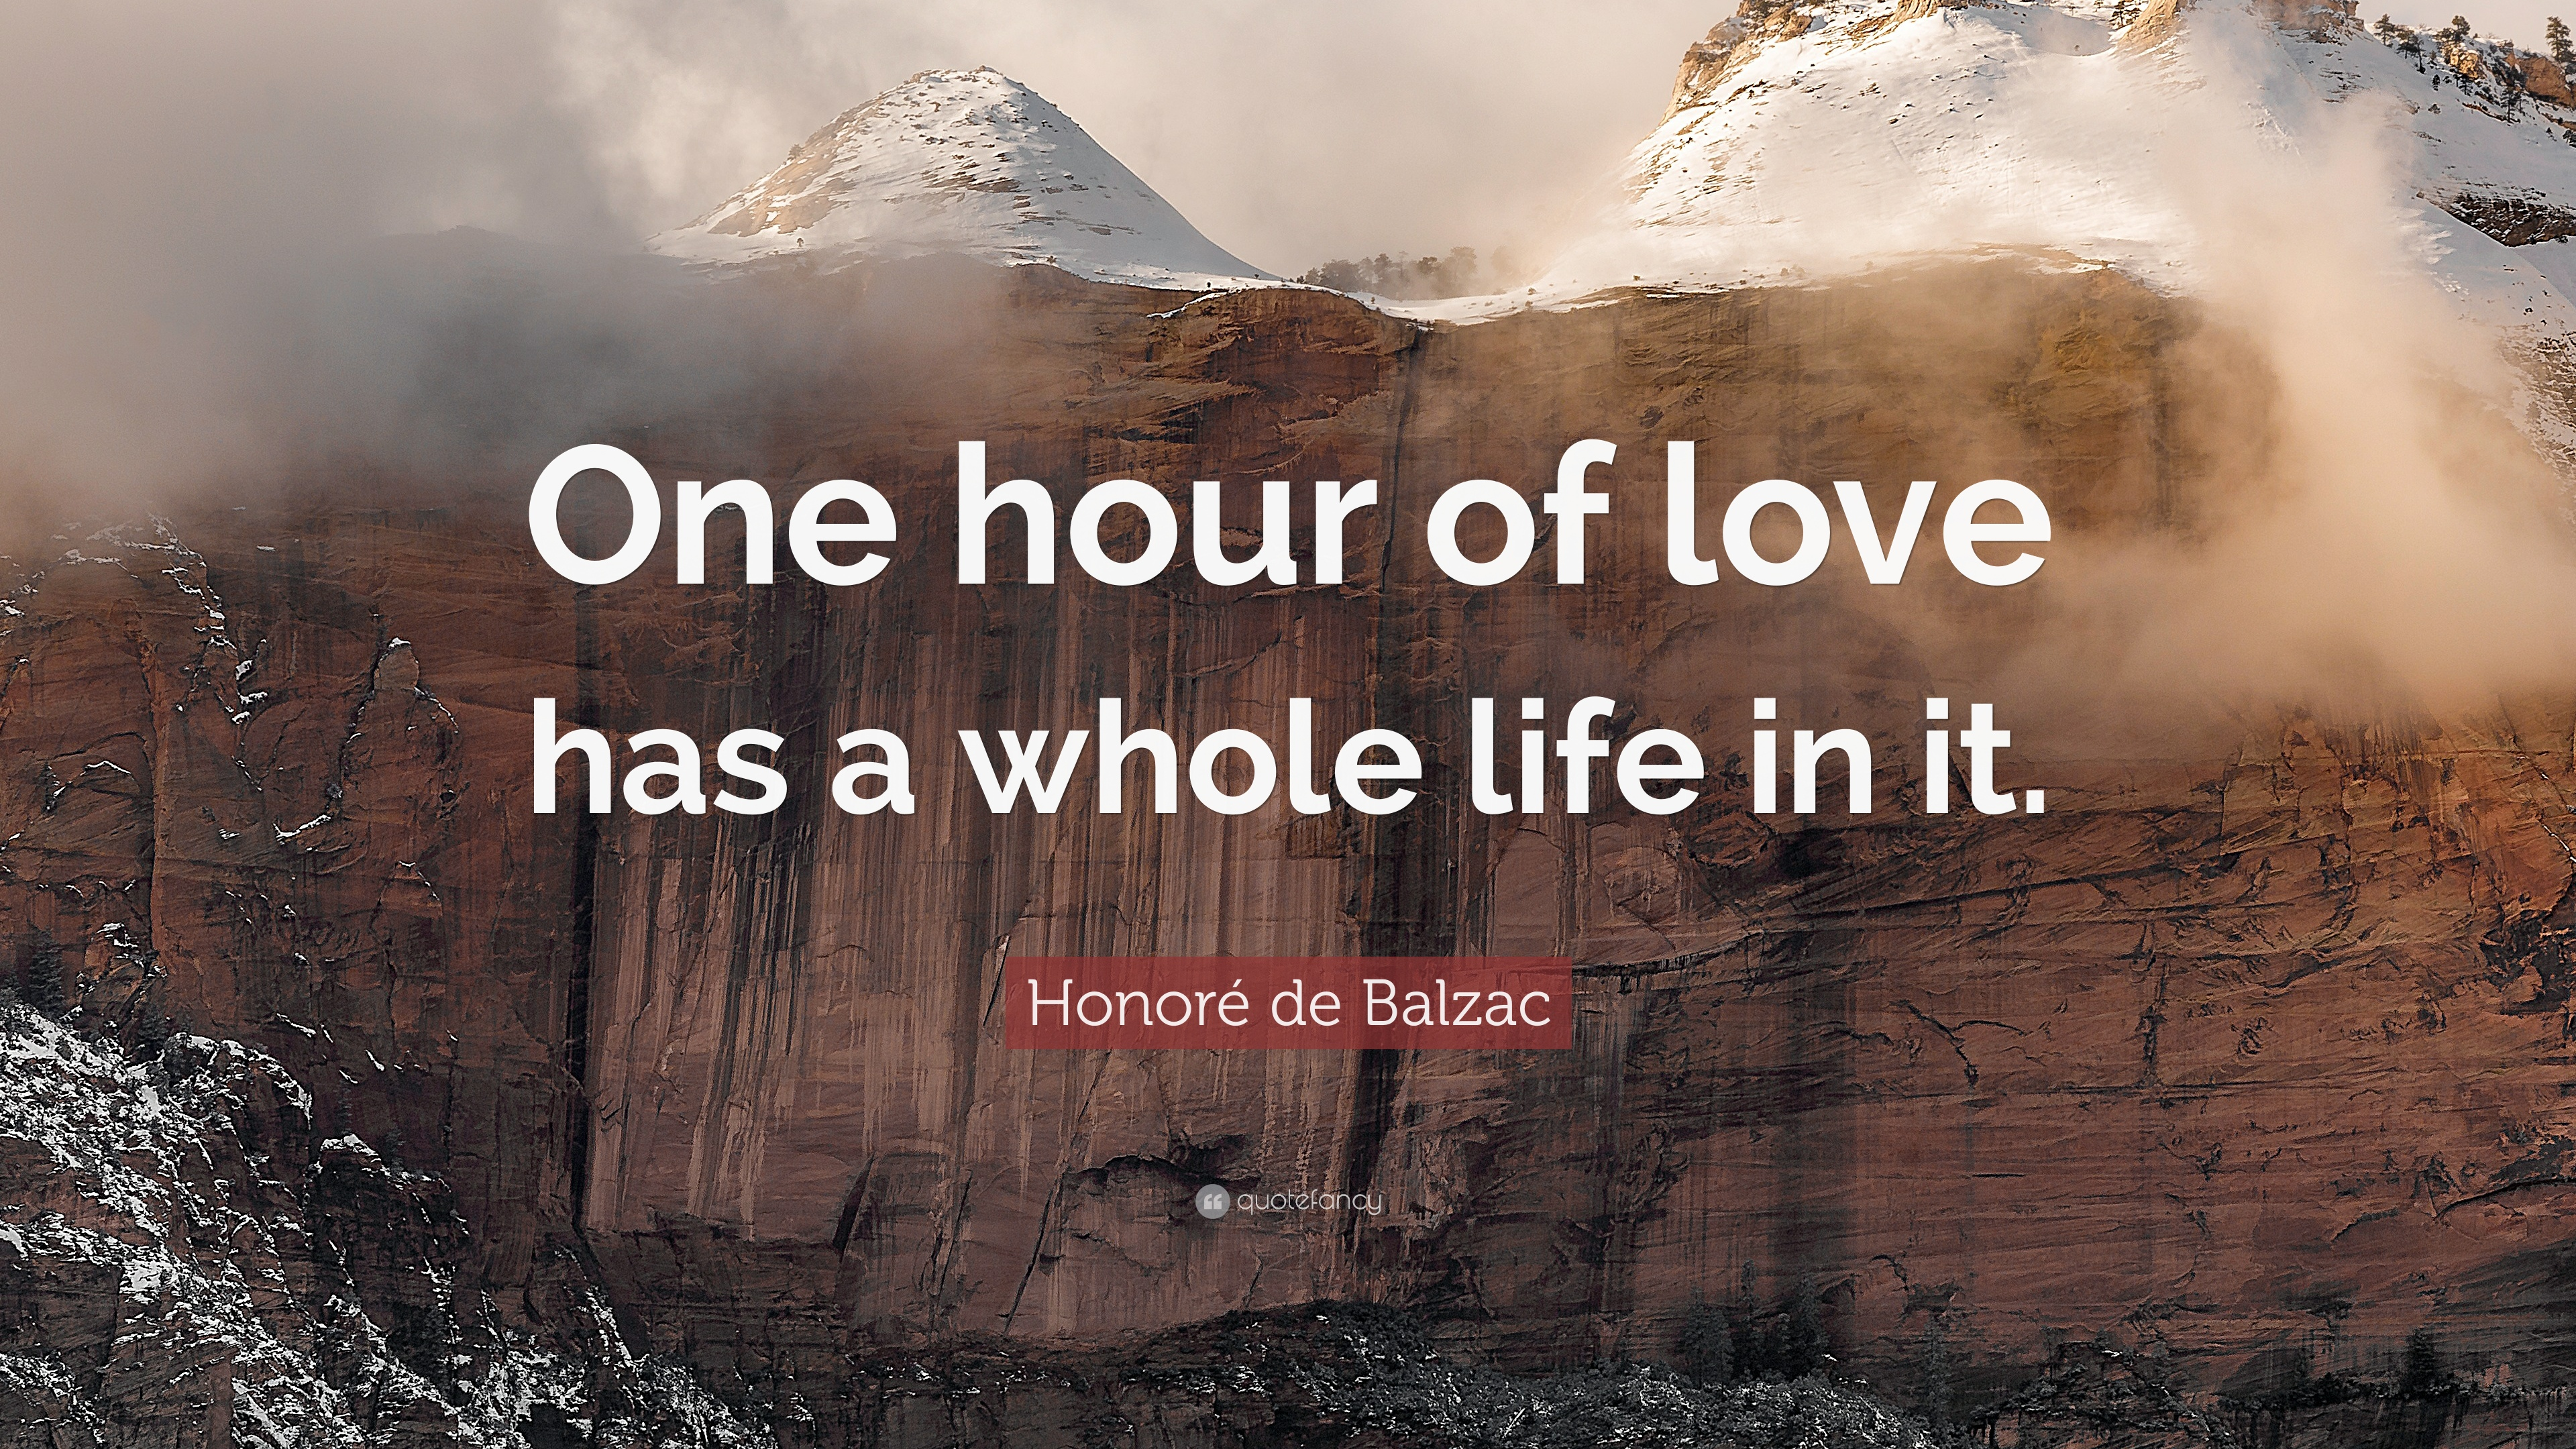 Honoré De Balzac Quote: U201cOne Hour Of Love Has A Whole Life In It